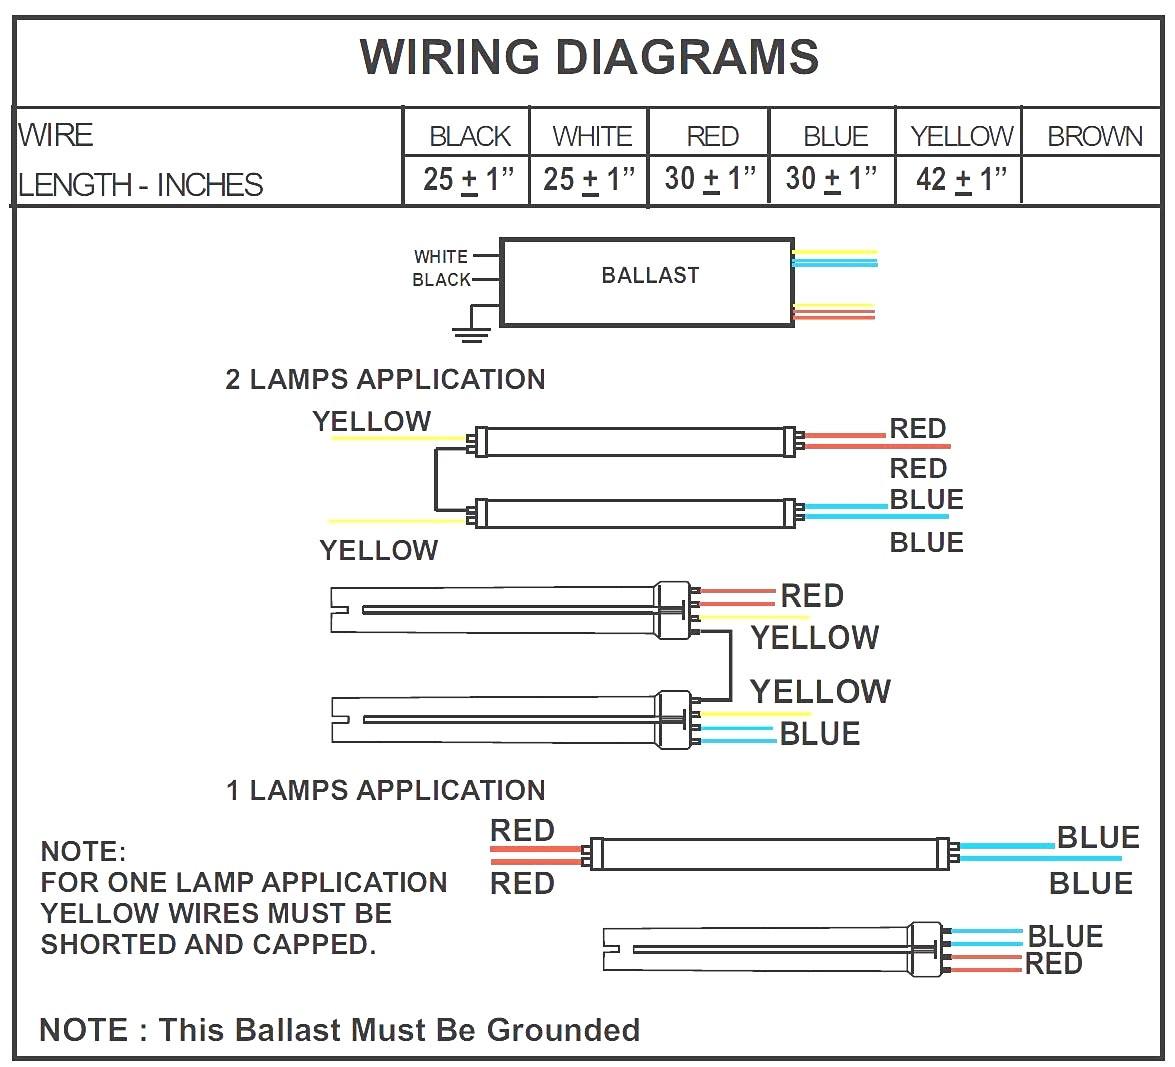 fulham ballast wiring diagram Collection-Fulham Workhorse Ballast Wiring Diagram Collection 4 lamp t5 ballast wiring diagram b2network co in 9-g